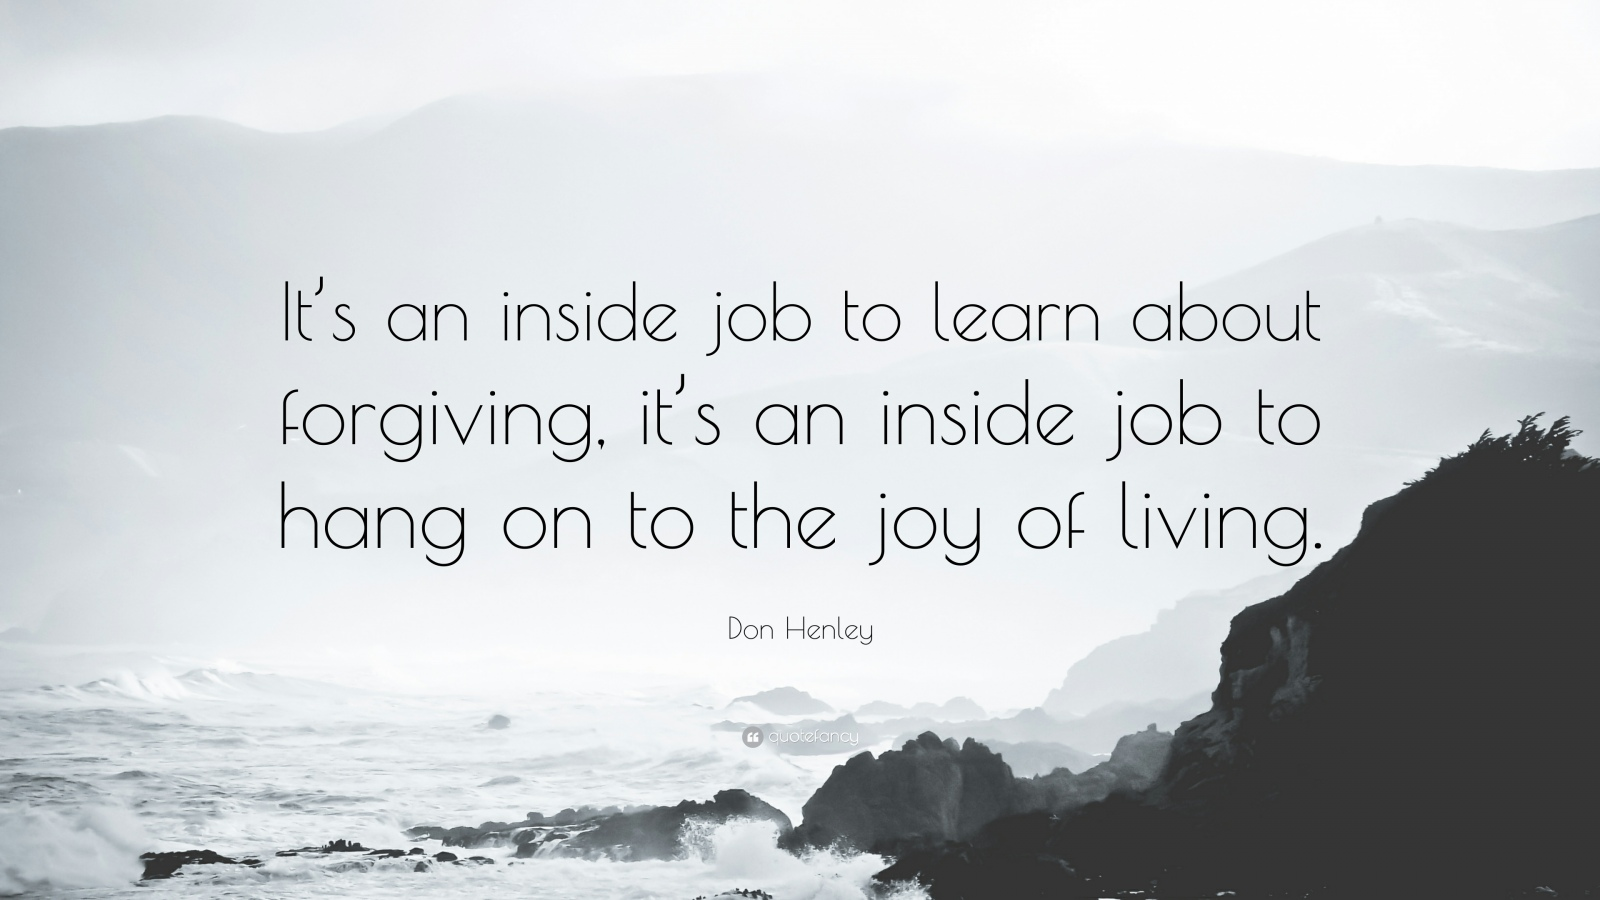 Quote against misty seashore - It's an inside job to learn about forgiving. It's an inside job to hang on to the joy of living.